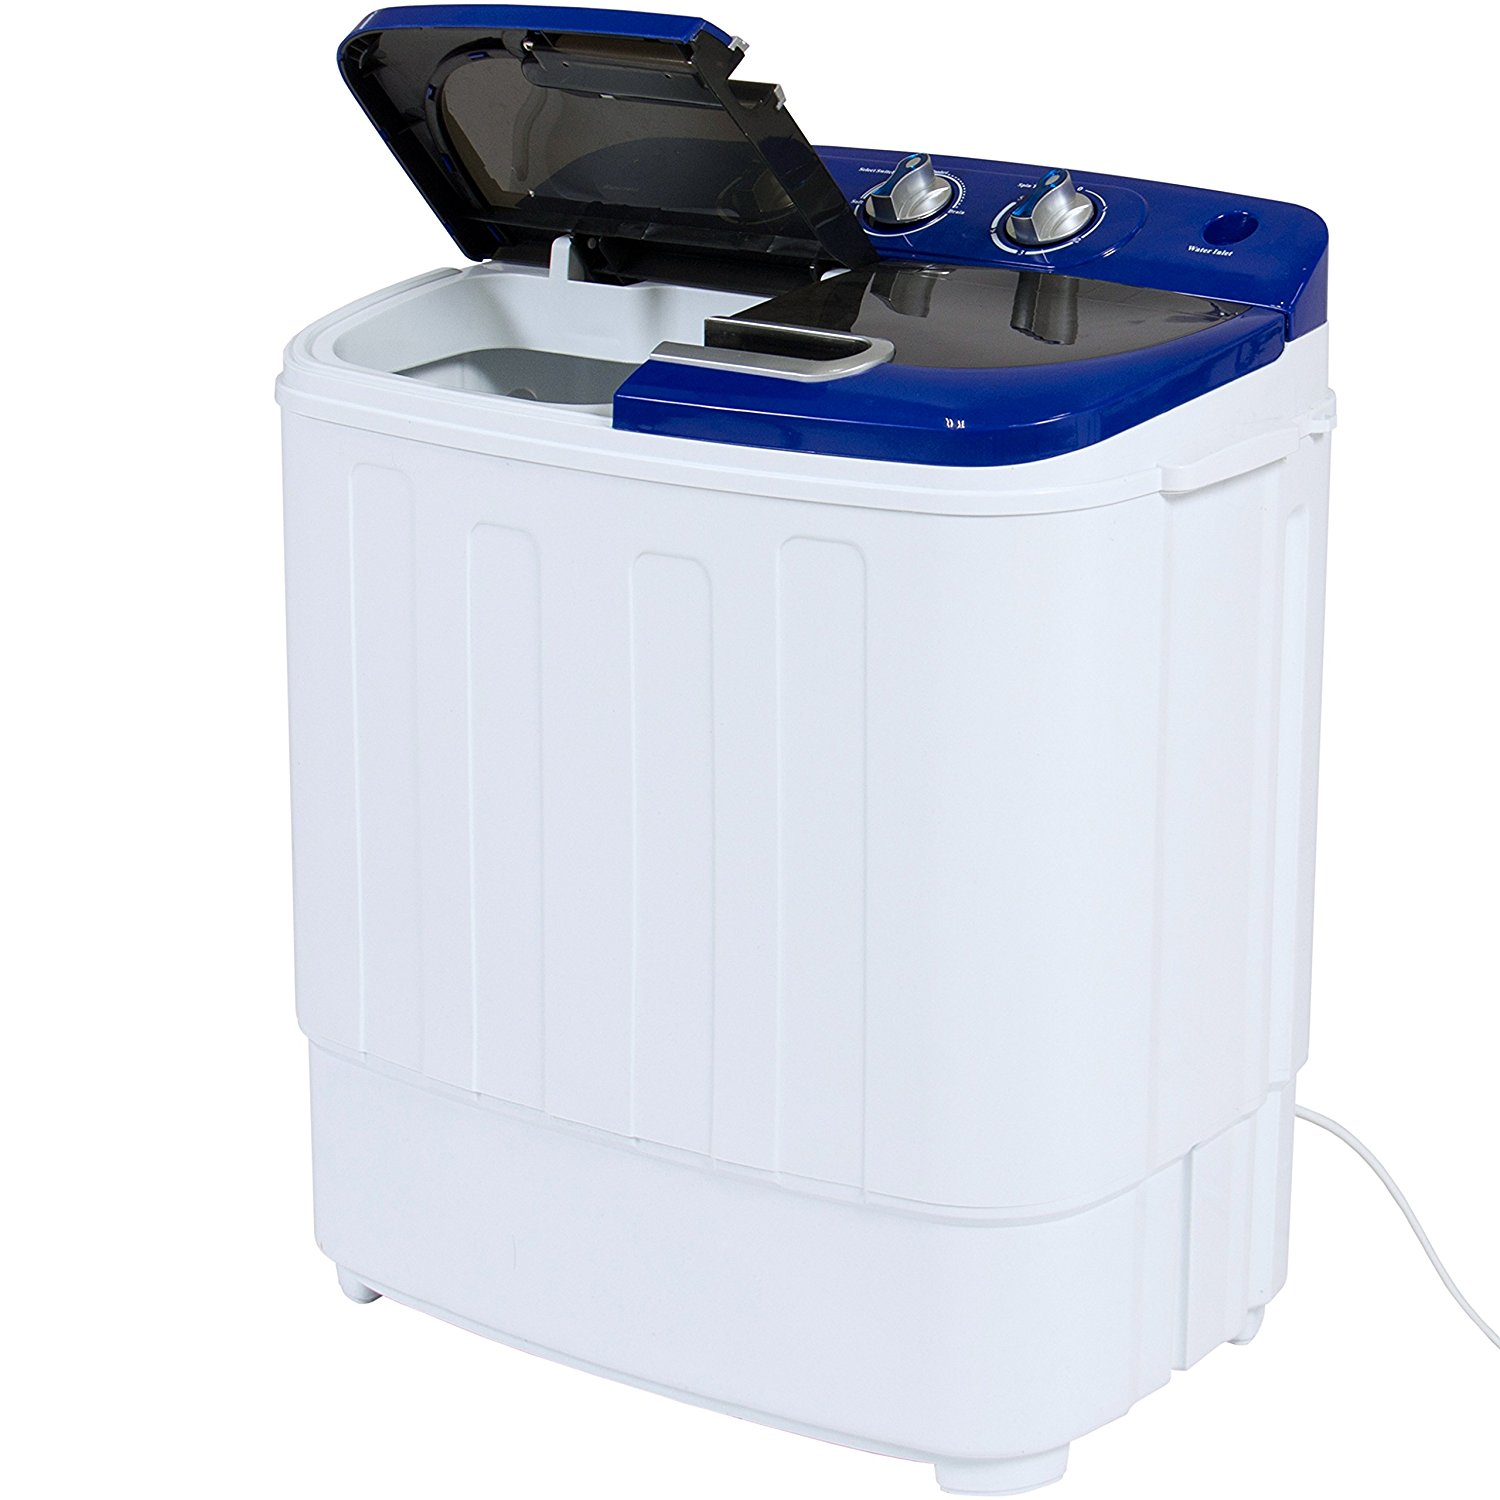 best choice products portable compact mini twin tub washing machine best offer ineedthebestoffer com